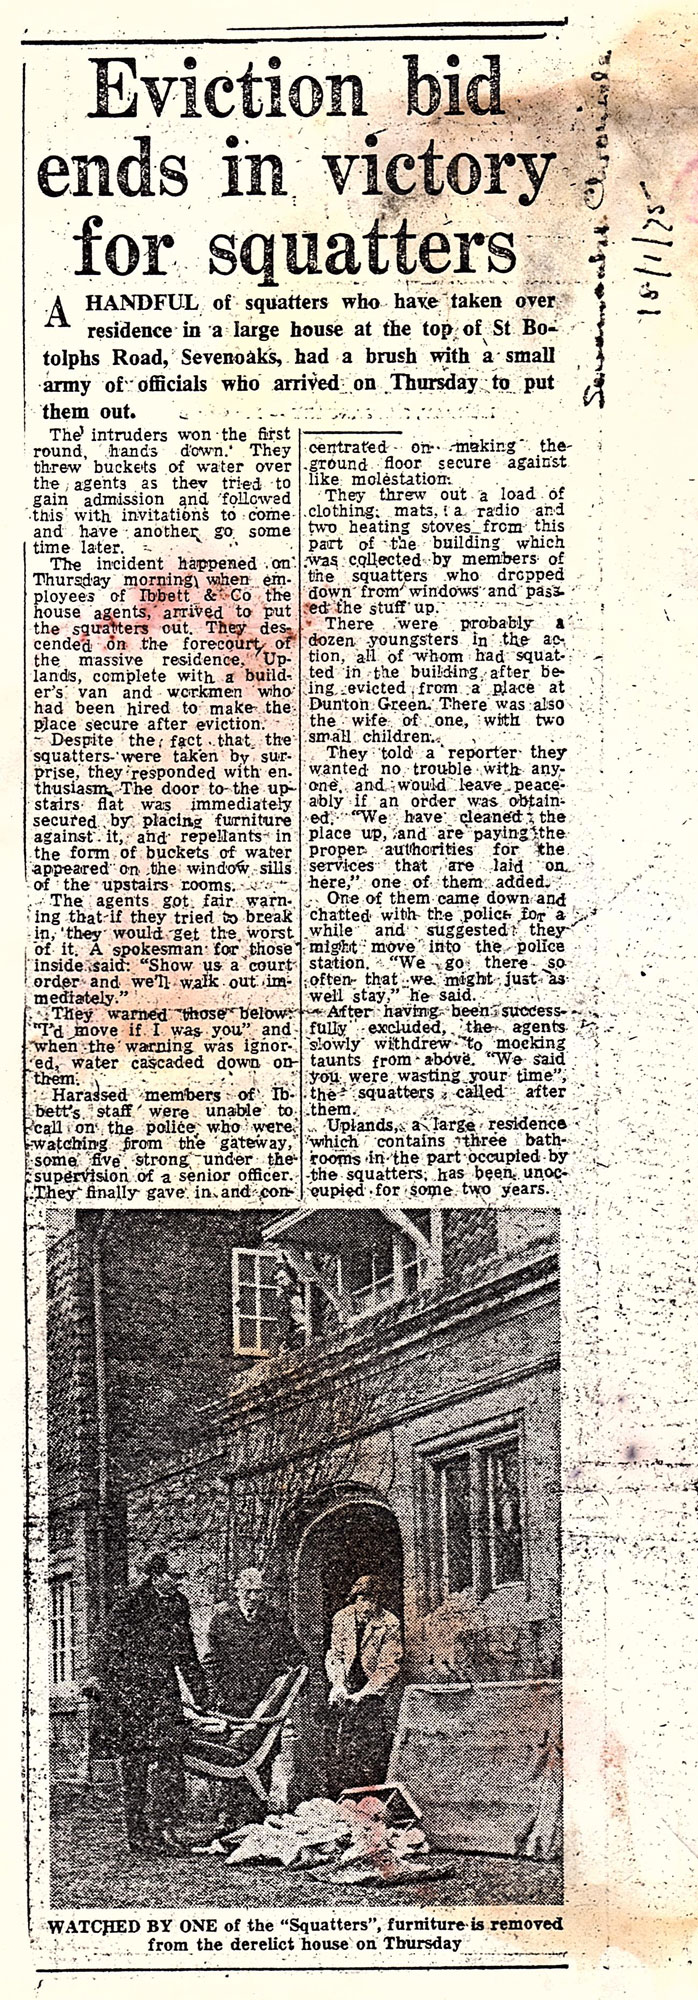 Newspaper article from 1975.